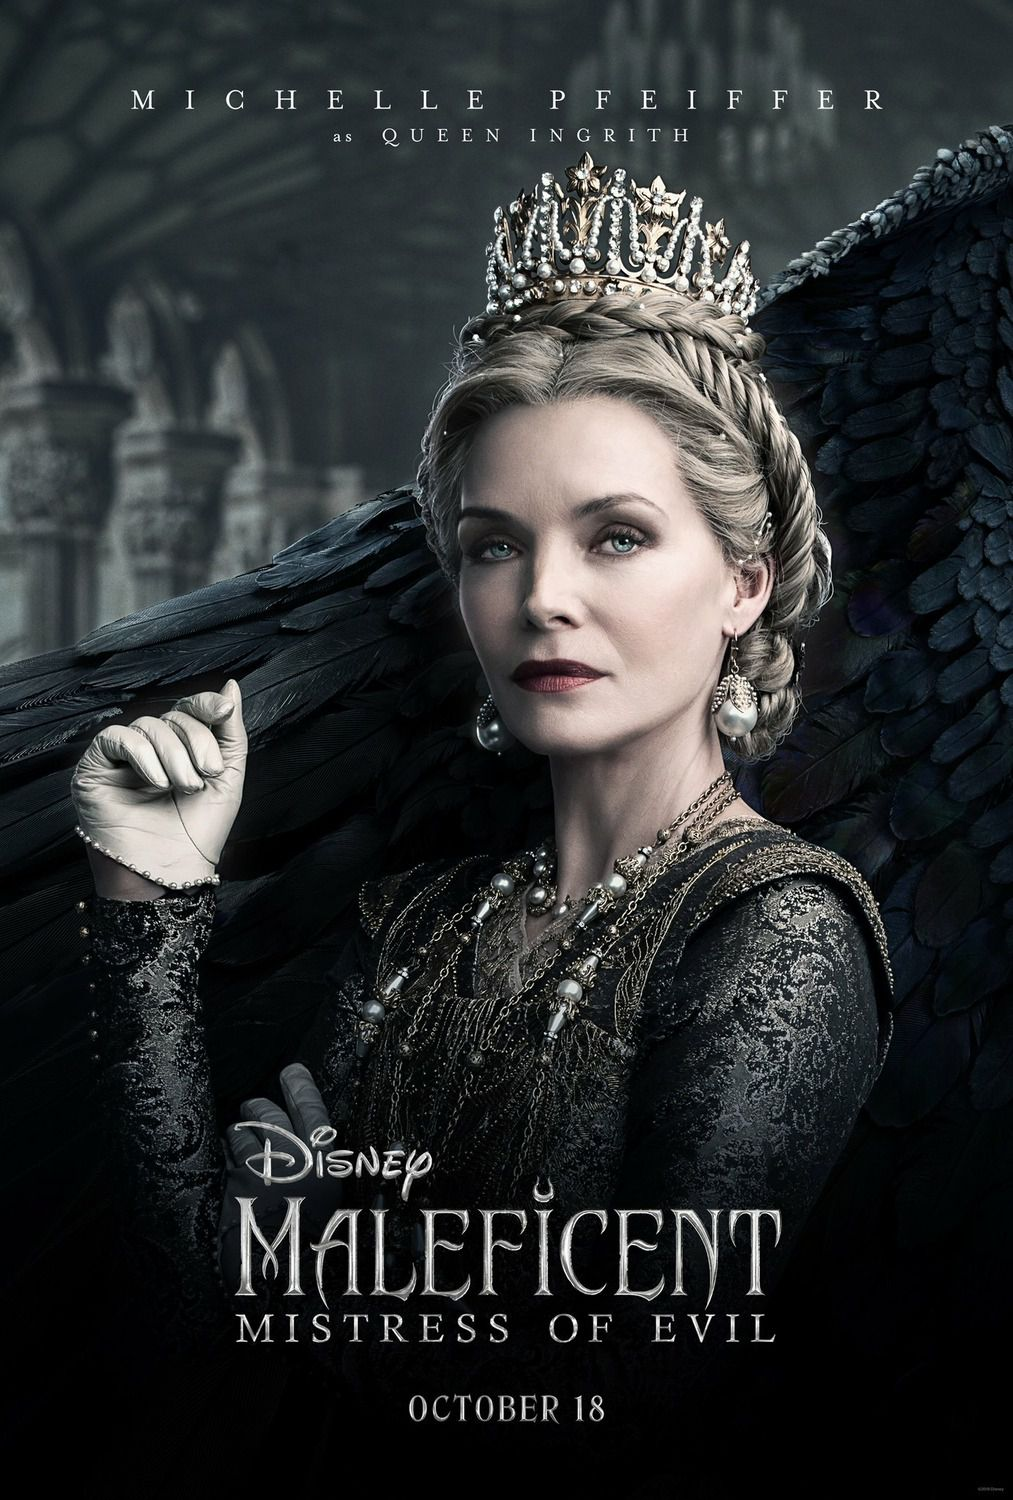 Maleficent 2 Mistress of Evil (2019) Michelle Pfeiffer as the Queen